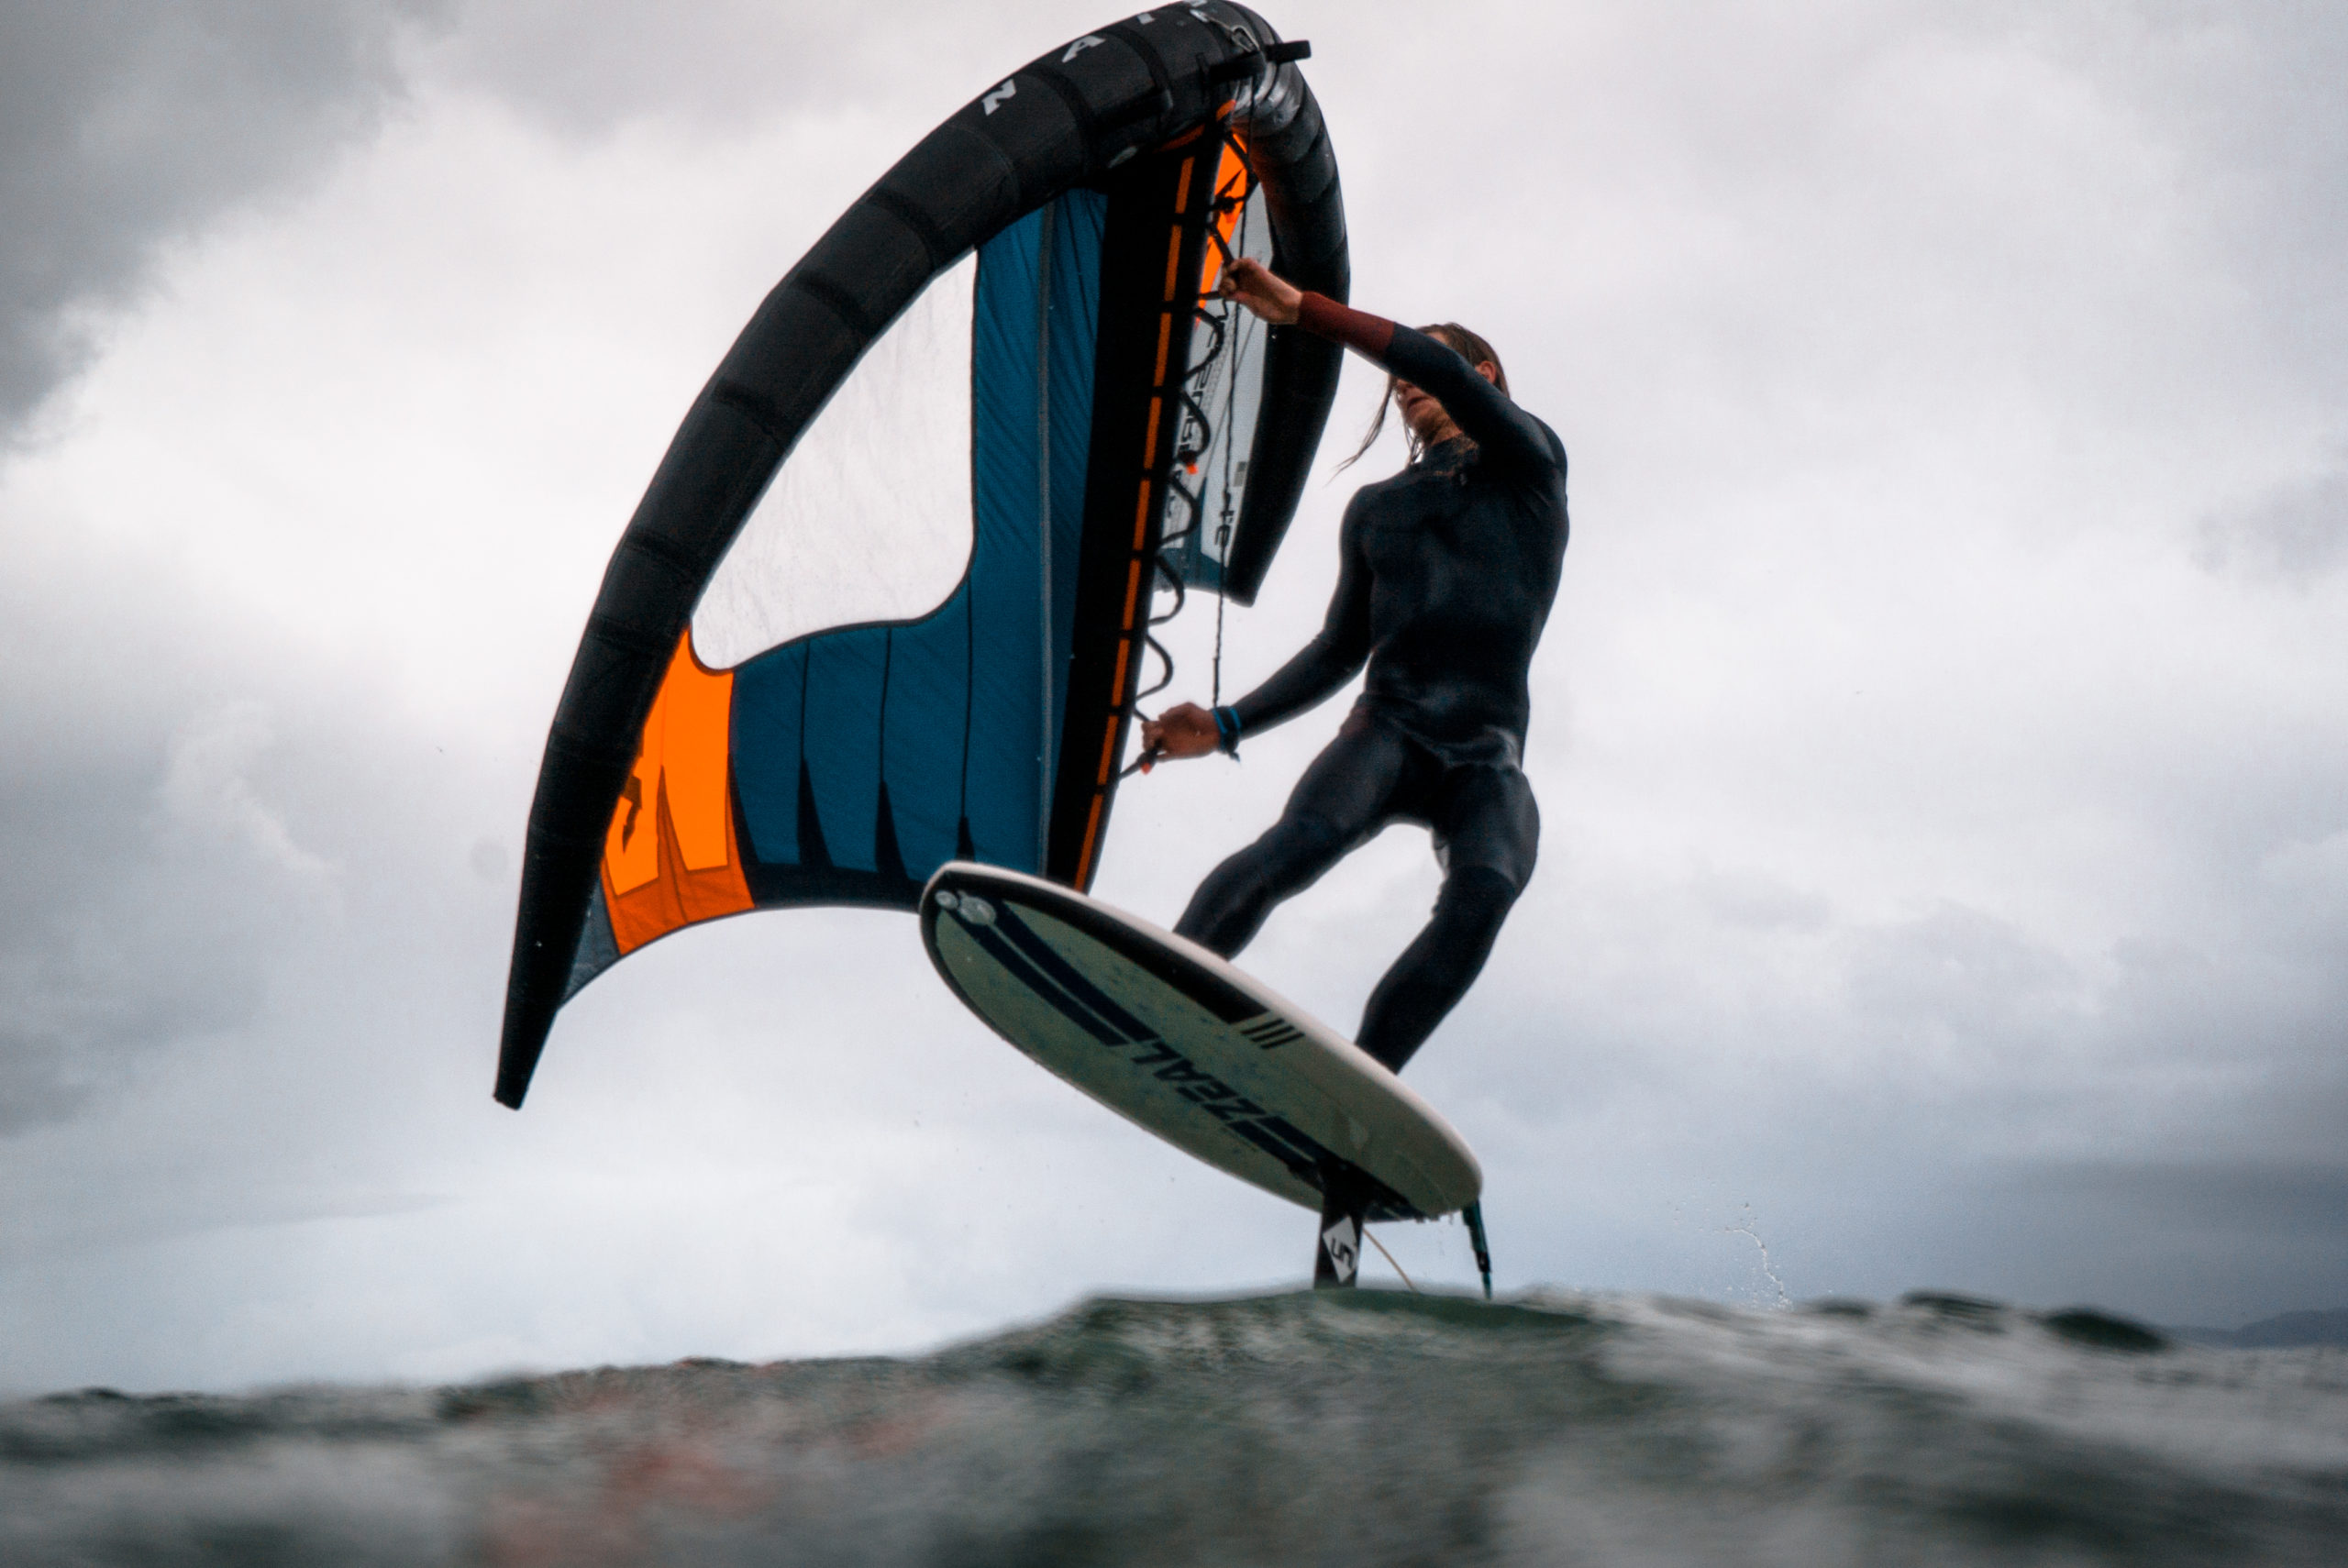 Naish Kite Wings being surf on the water